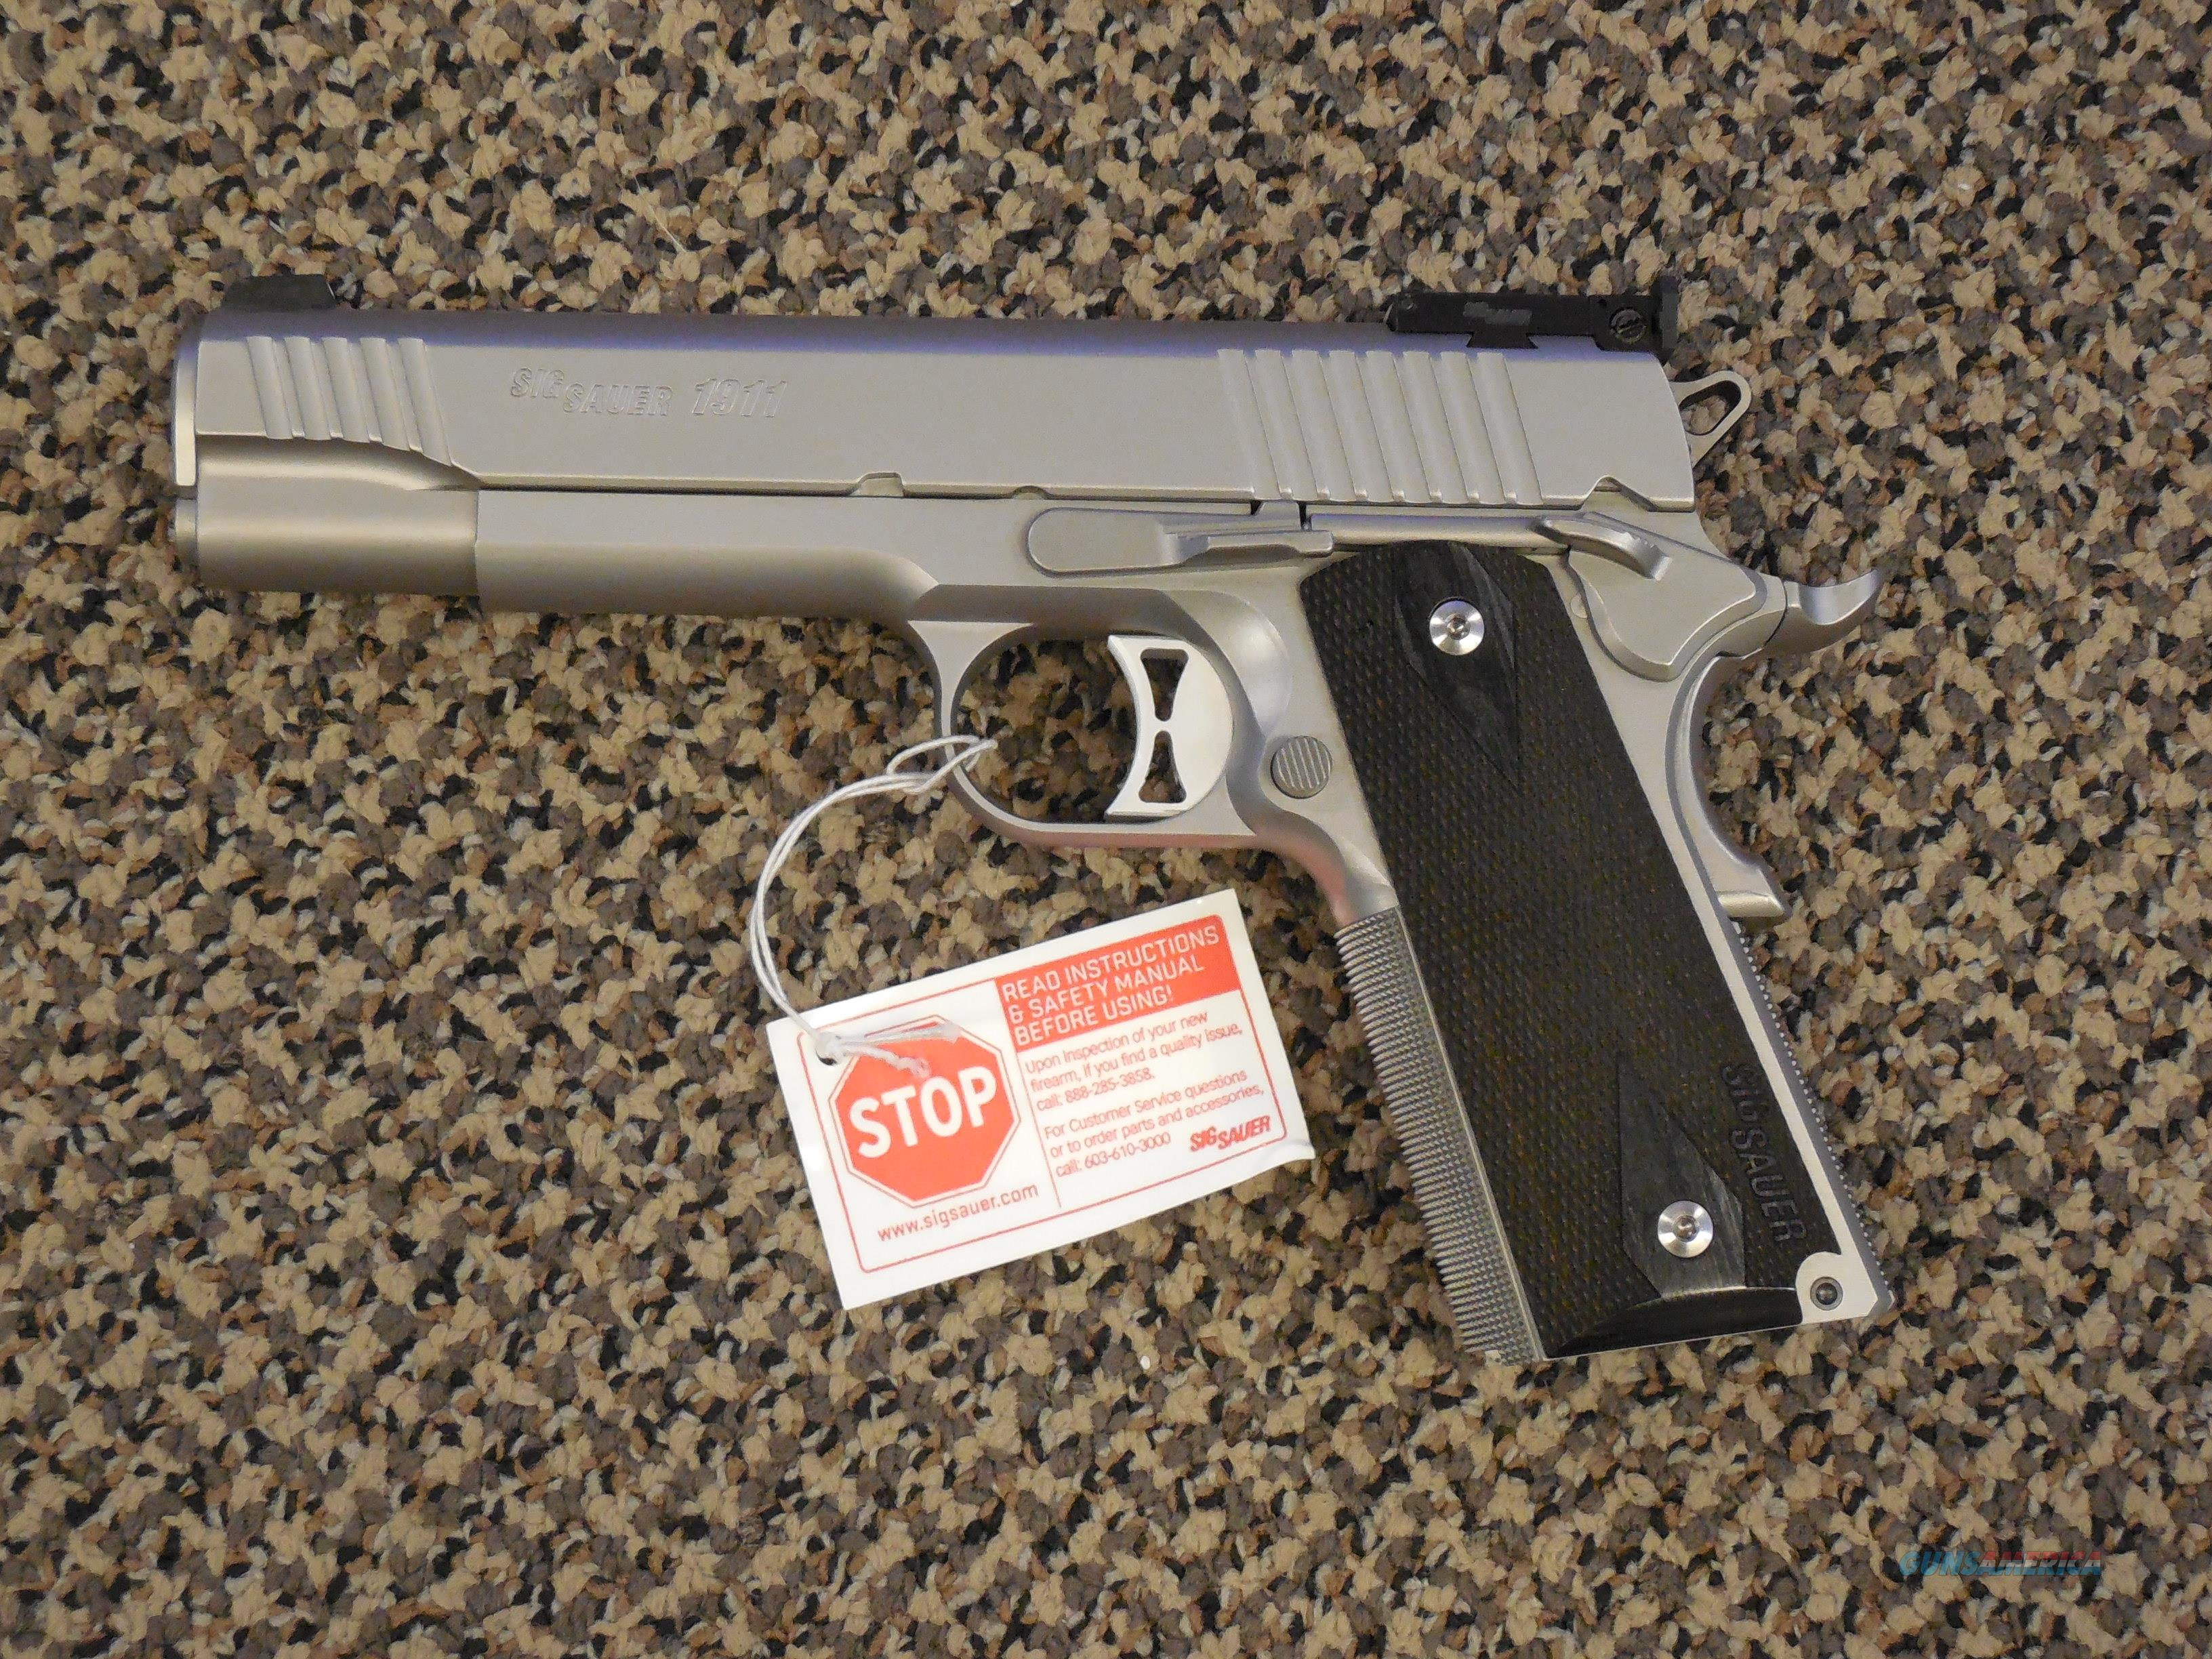 SIG SAUER 1911 ALL STAINLESS 9 MM WITH ADJUSTABLE SIGHTS  Guns > Pistols > Sig - Sauer/Sigarms Pistols > 1911